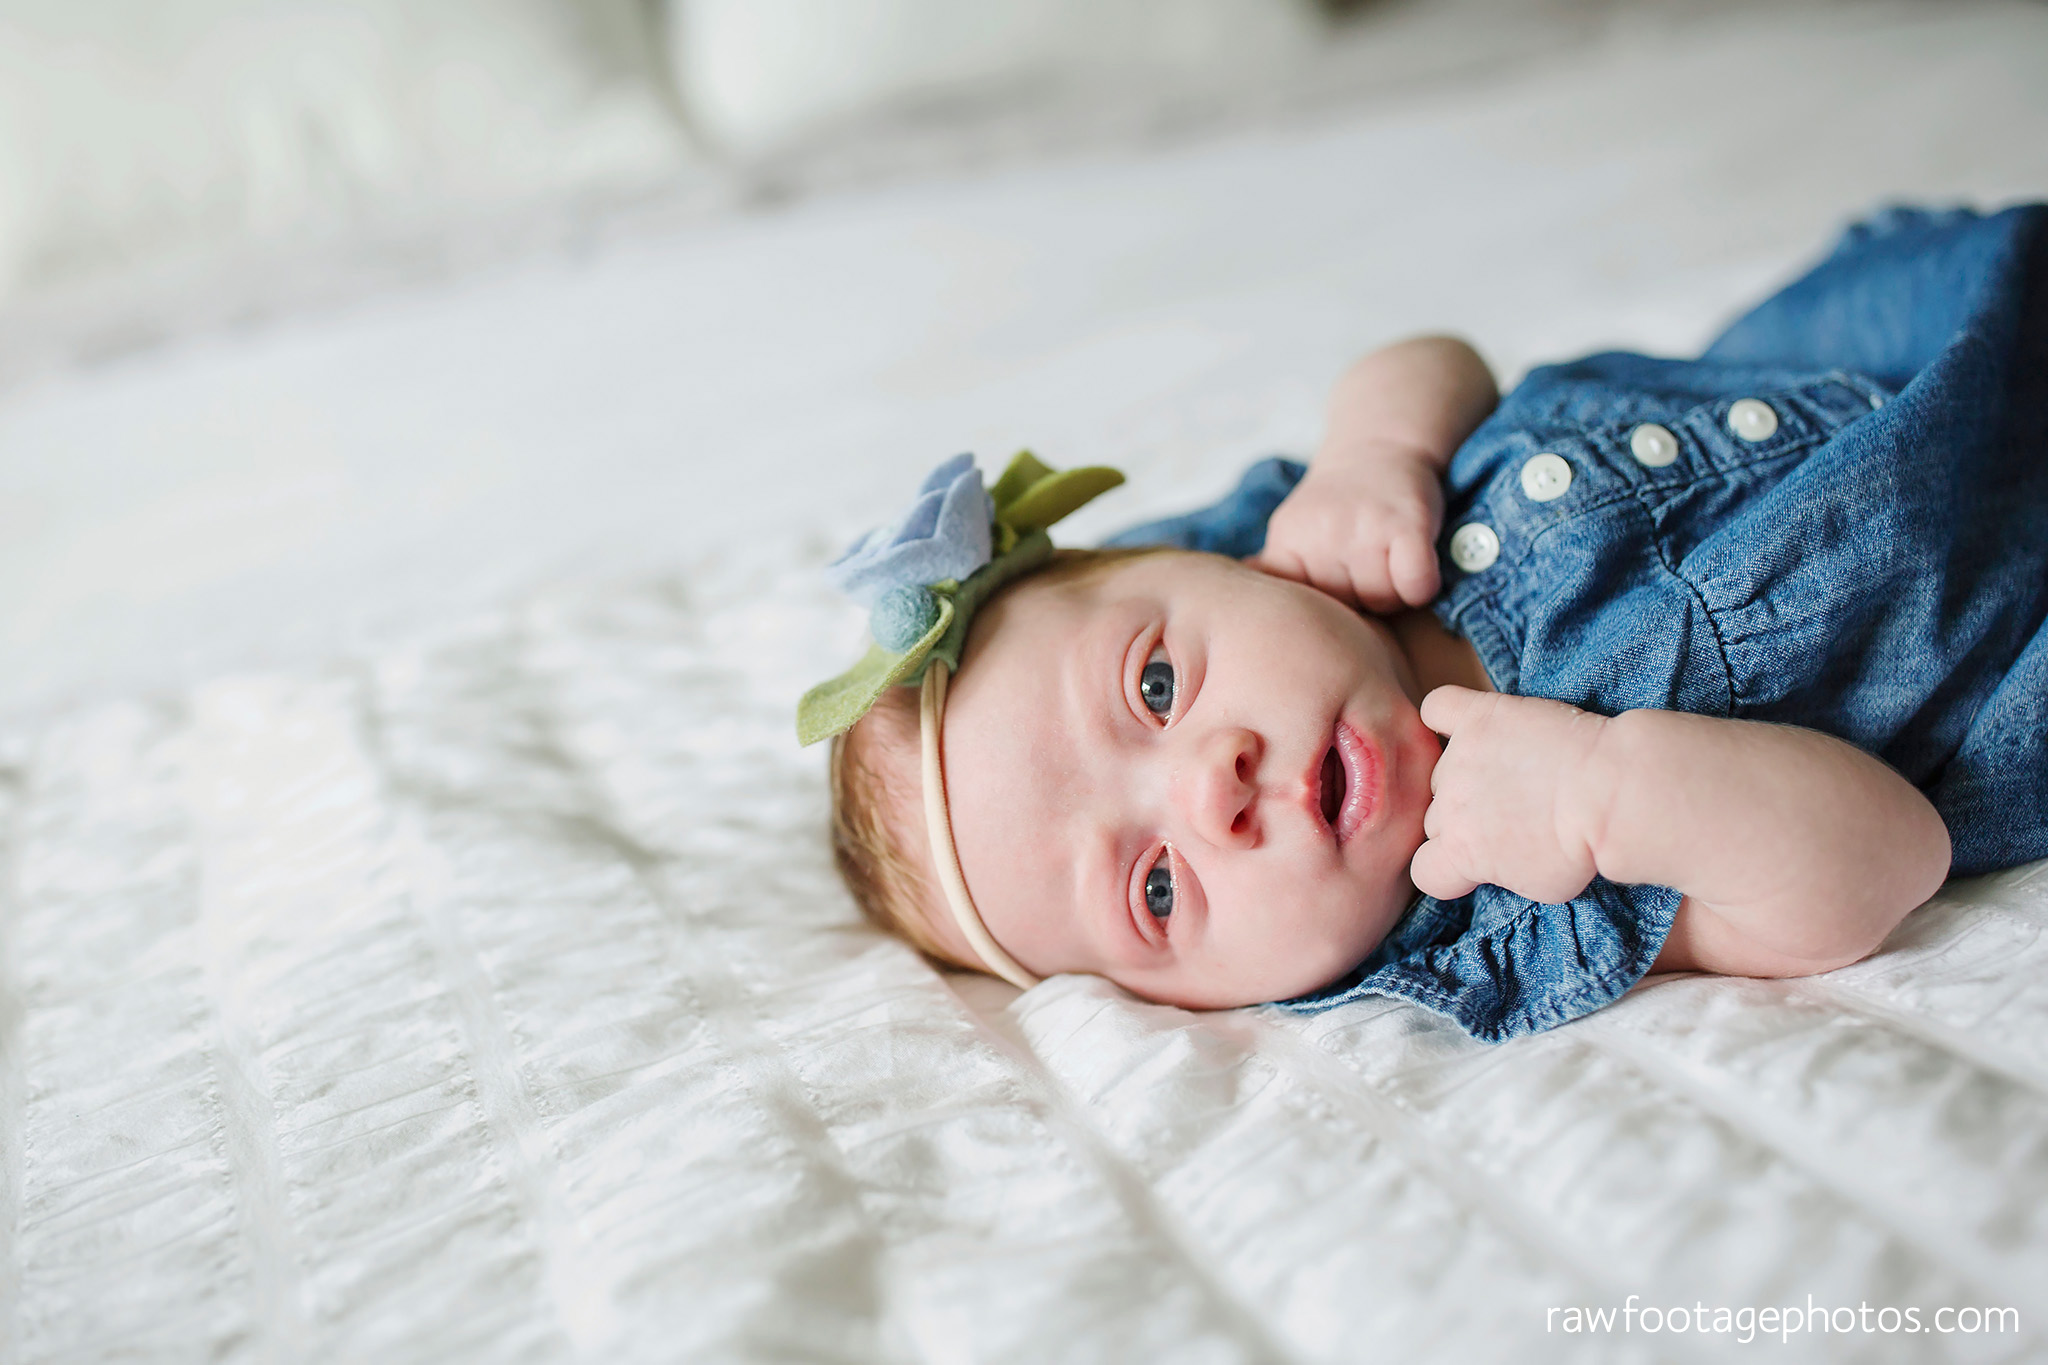 london_ontario_newborn_lifestyle_photography-in_home_newborn_session-raw_footage_photography018.jpg